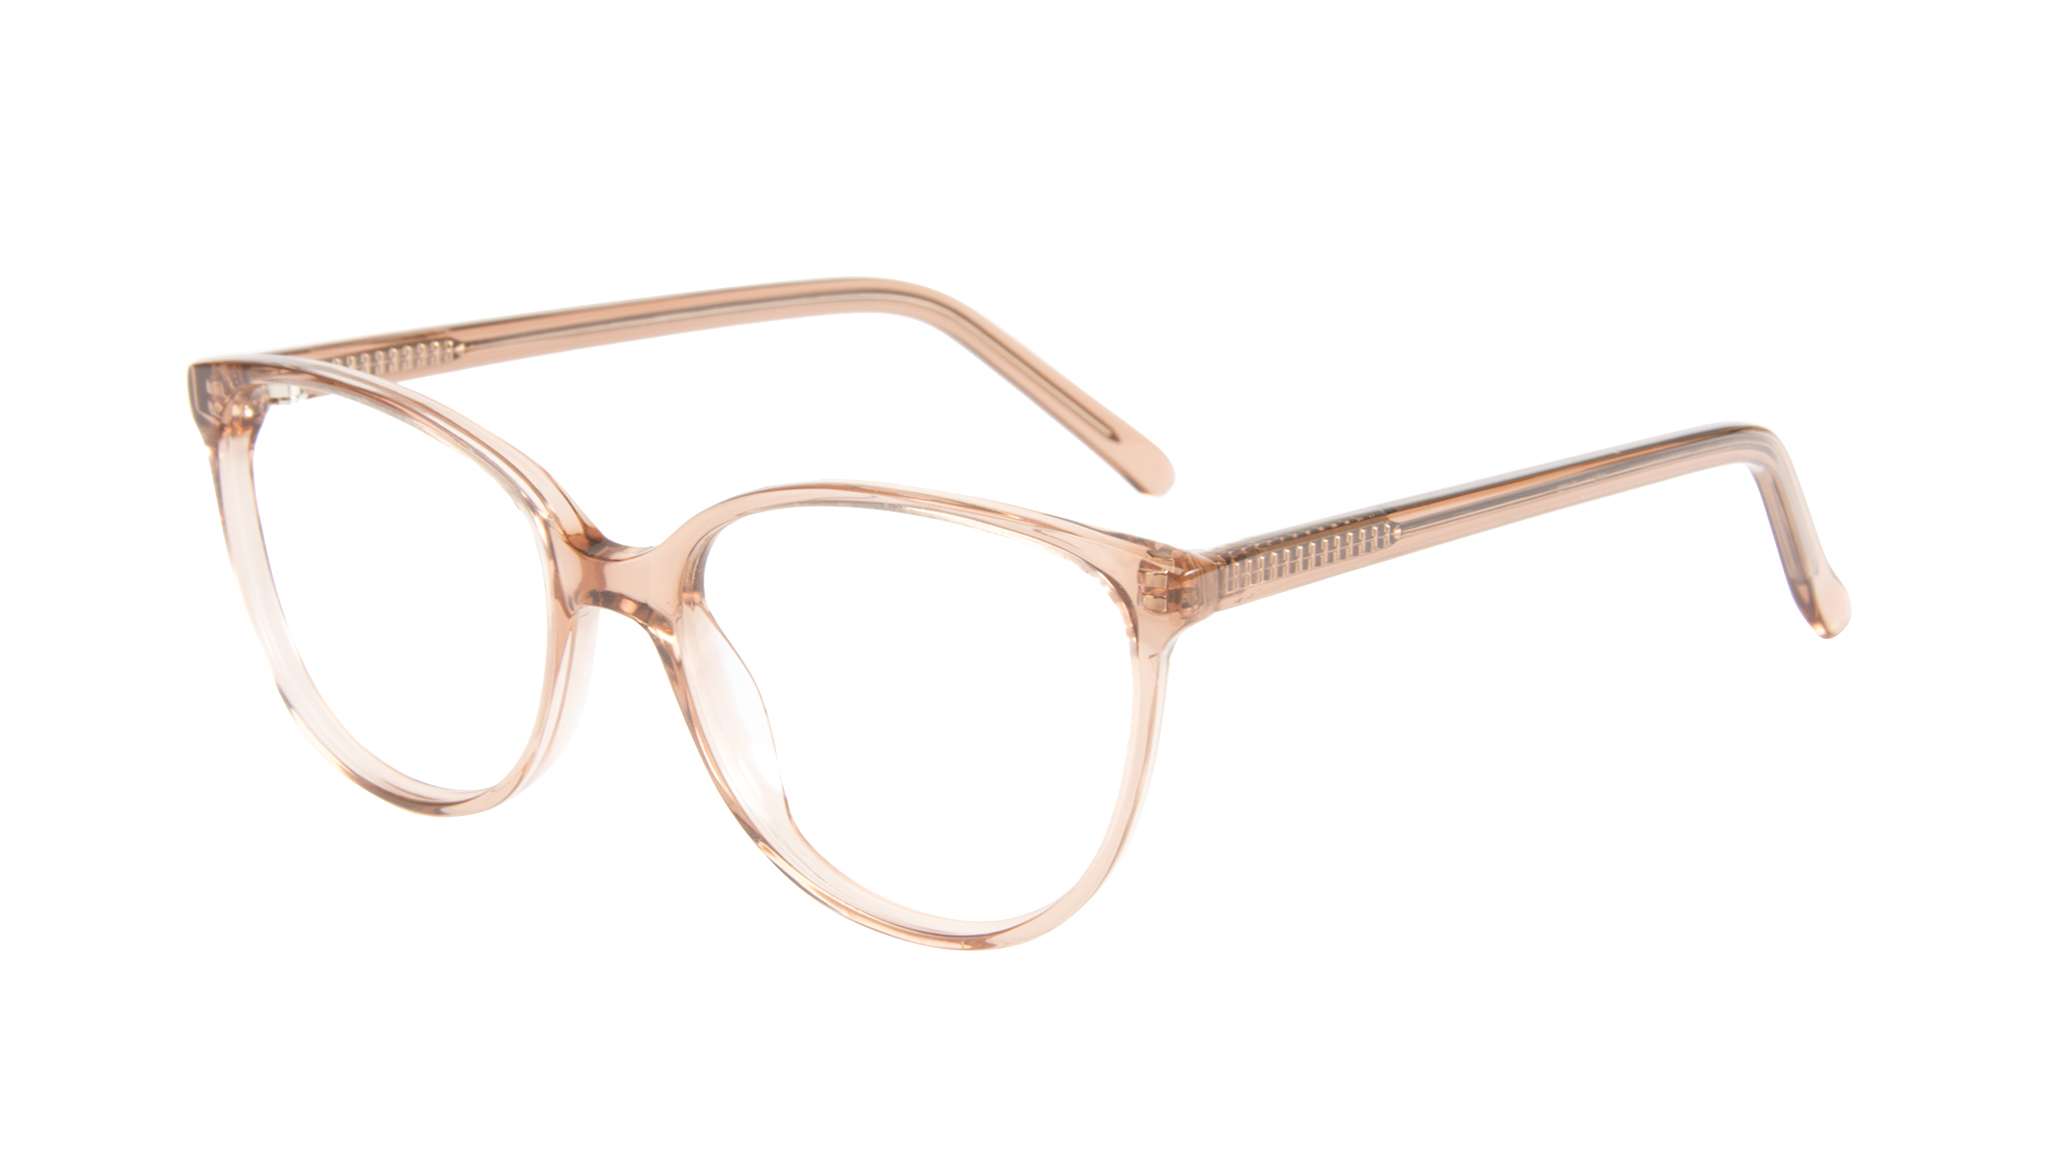 13e027a0315 Affordable fashion glasses round eyeglasses women imagine petite rose tilt  jpg 1600x707 Eyeglasses for women